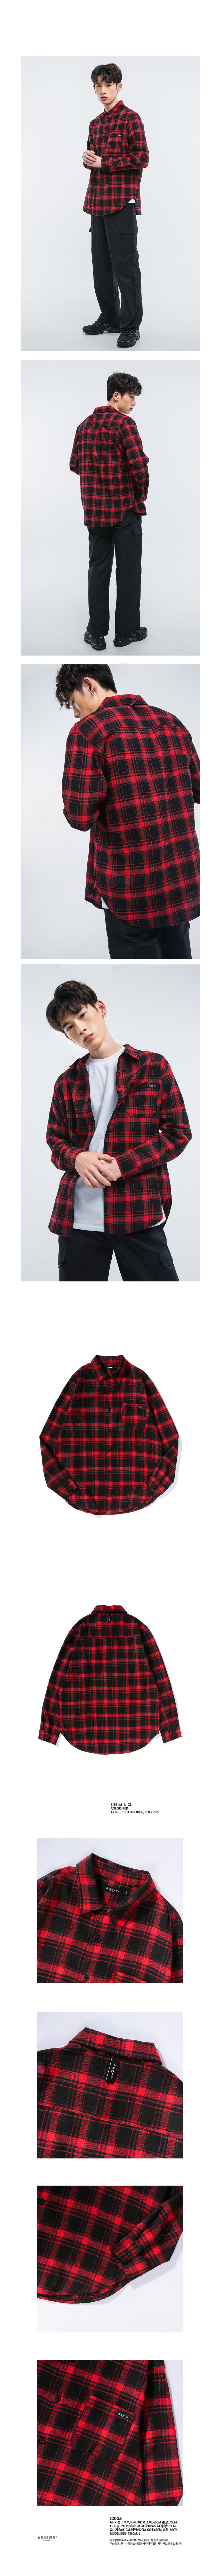 올라온 - Check Shirt - Red